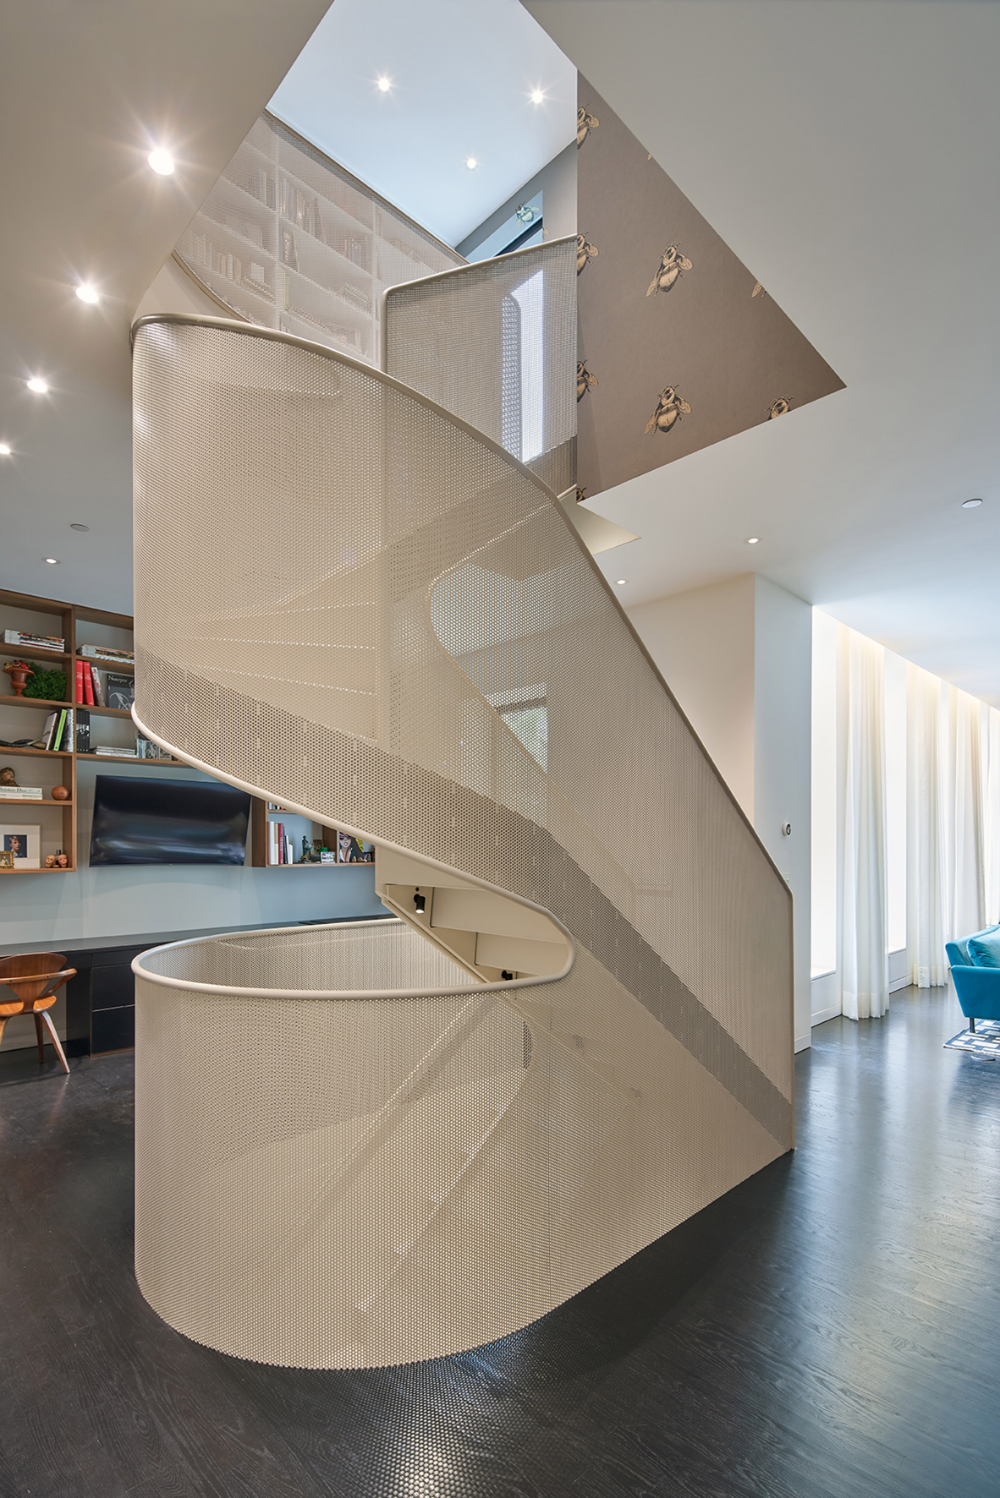 Workac Adds Curving Perforated Steel Staircase To Brooklyn Apartment Dezeen In 2020 Brooklyn Apartment Unique Floor Plans Staircase